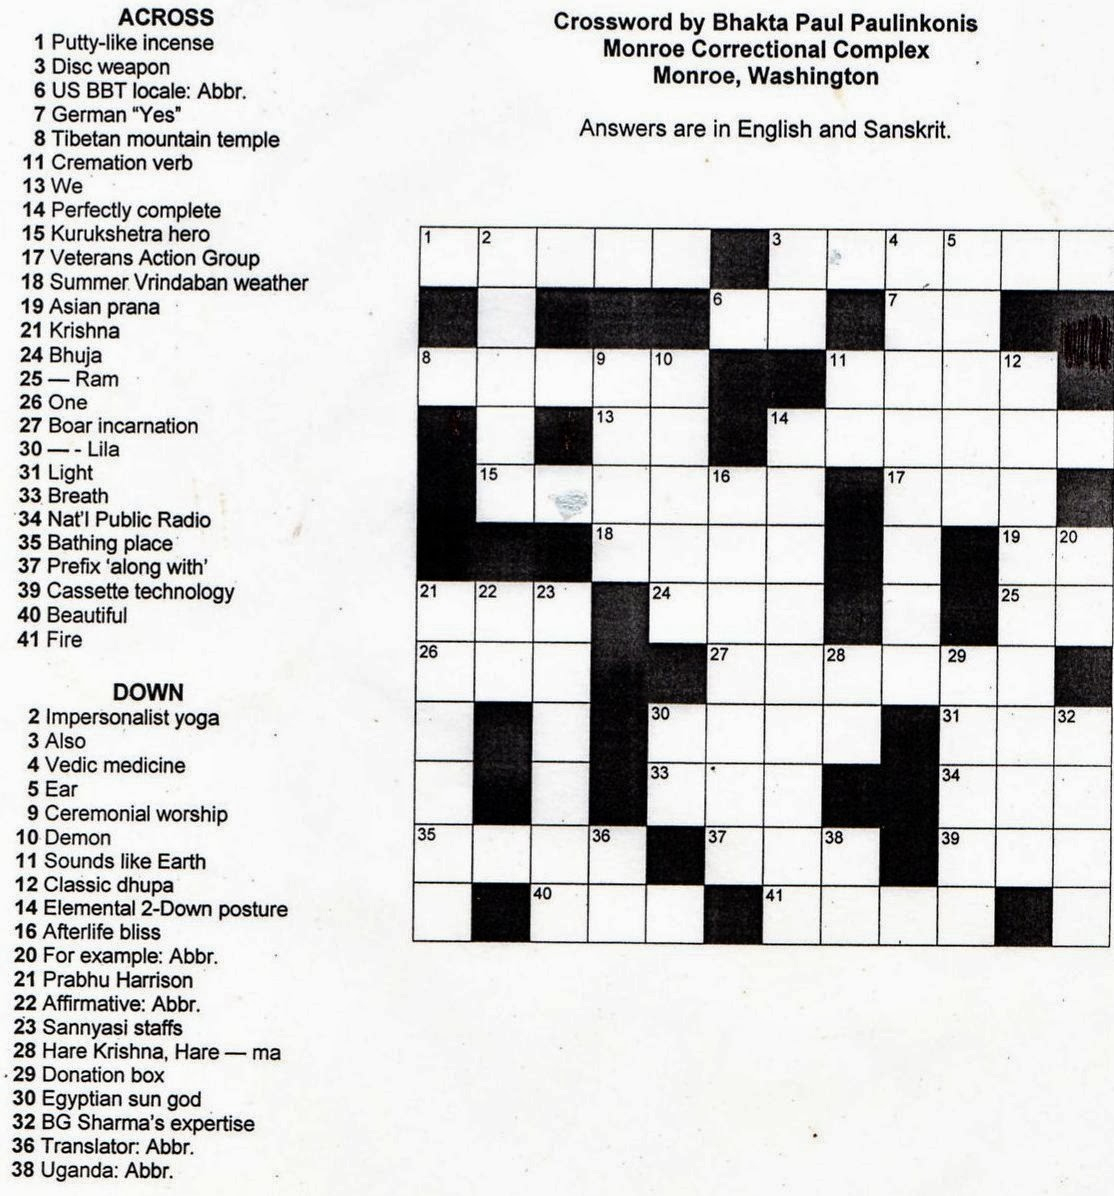 5 Printable Crossword Puzzles For Christmas - Printable Crossword Puzzle For Grade 5